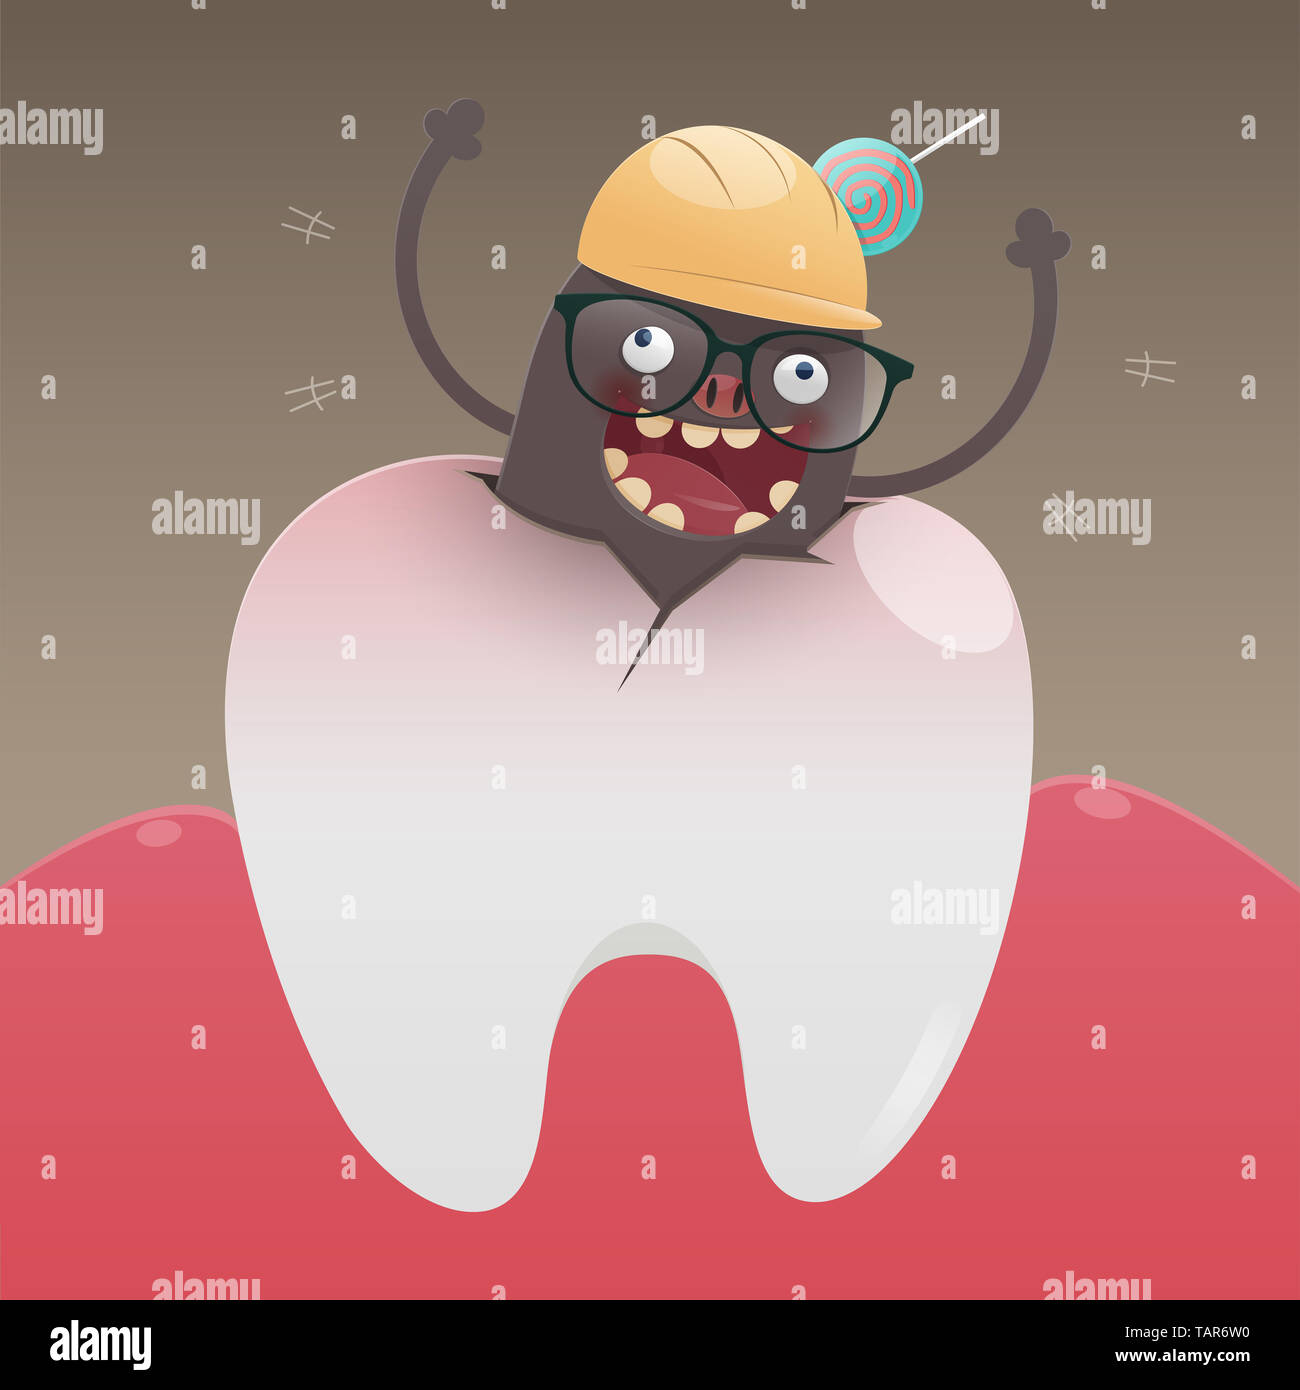 The Bad Monster Is Digging And Damaging The Tooth A Toothache Is Caused By Tooth Decay Cartoon Vector Concept With Tooth Health Stock Photo Alamy